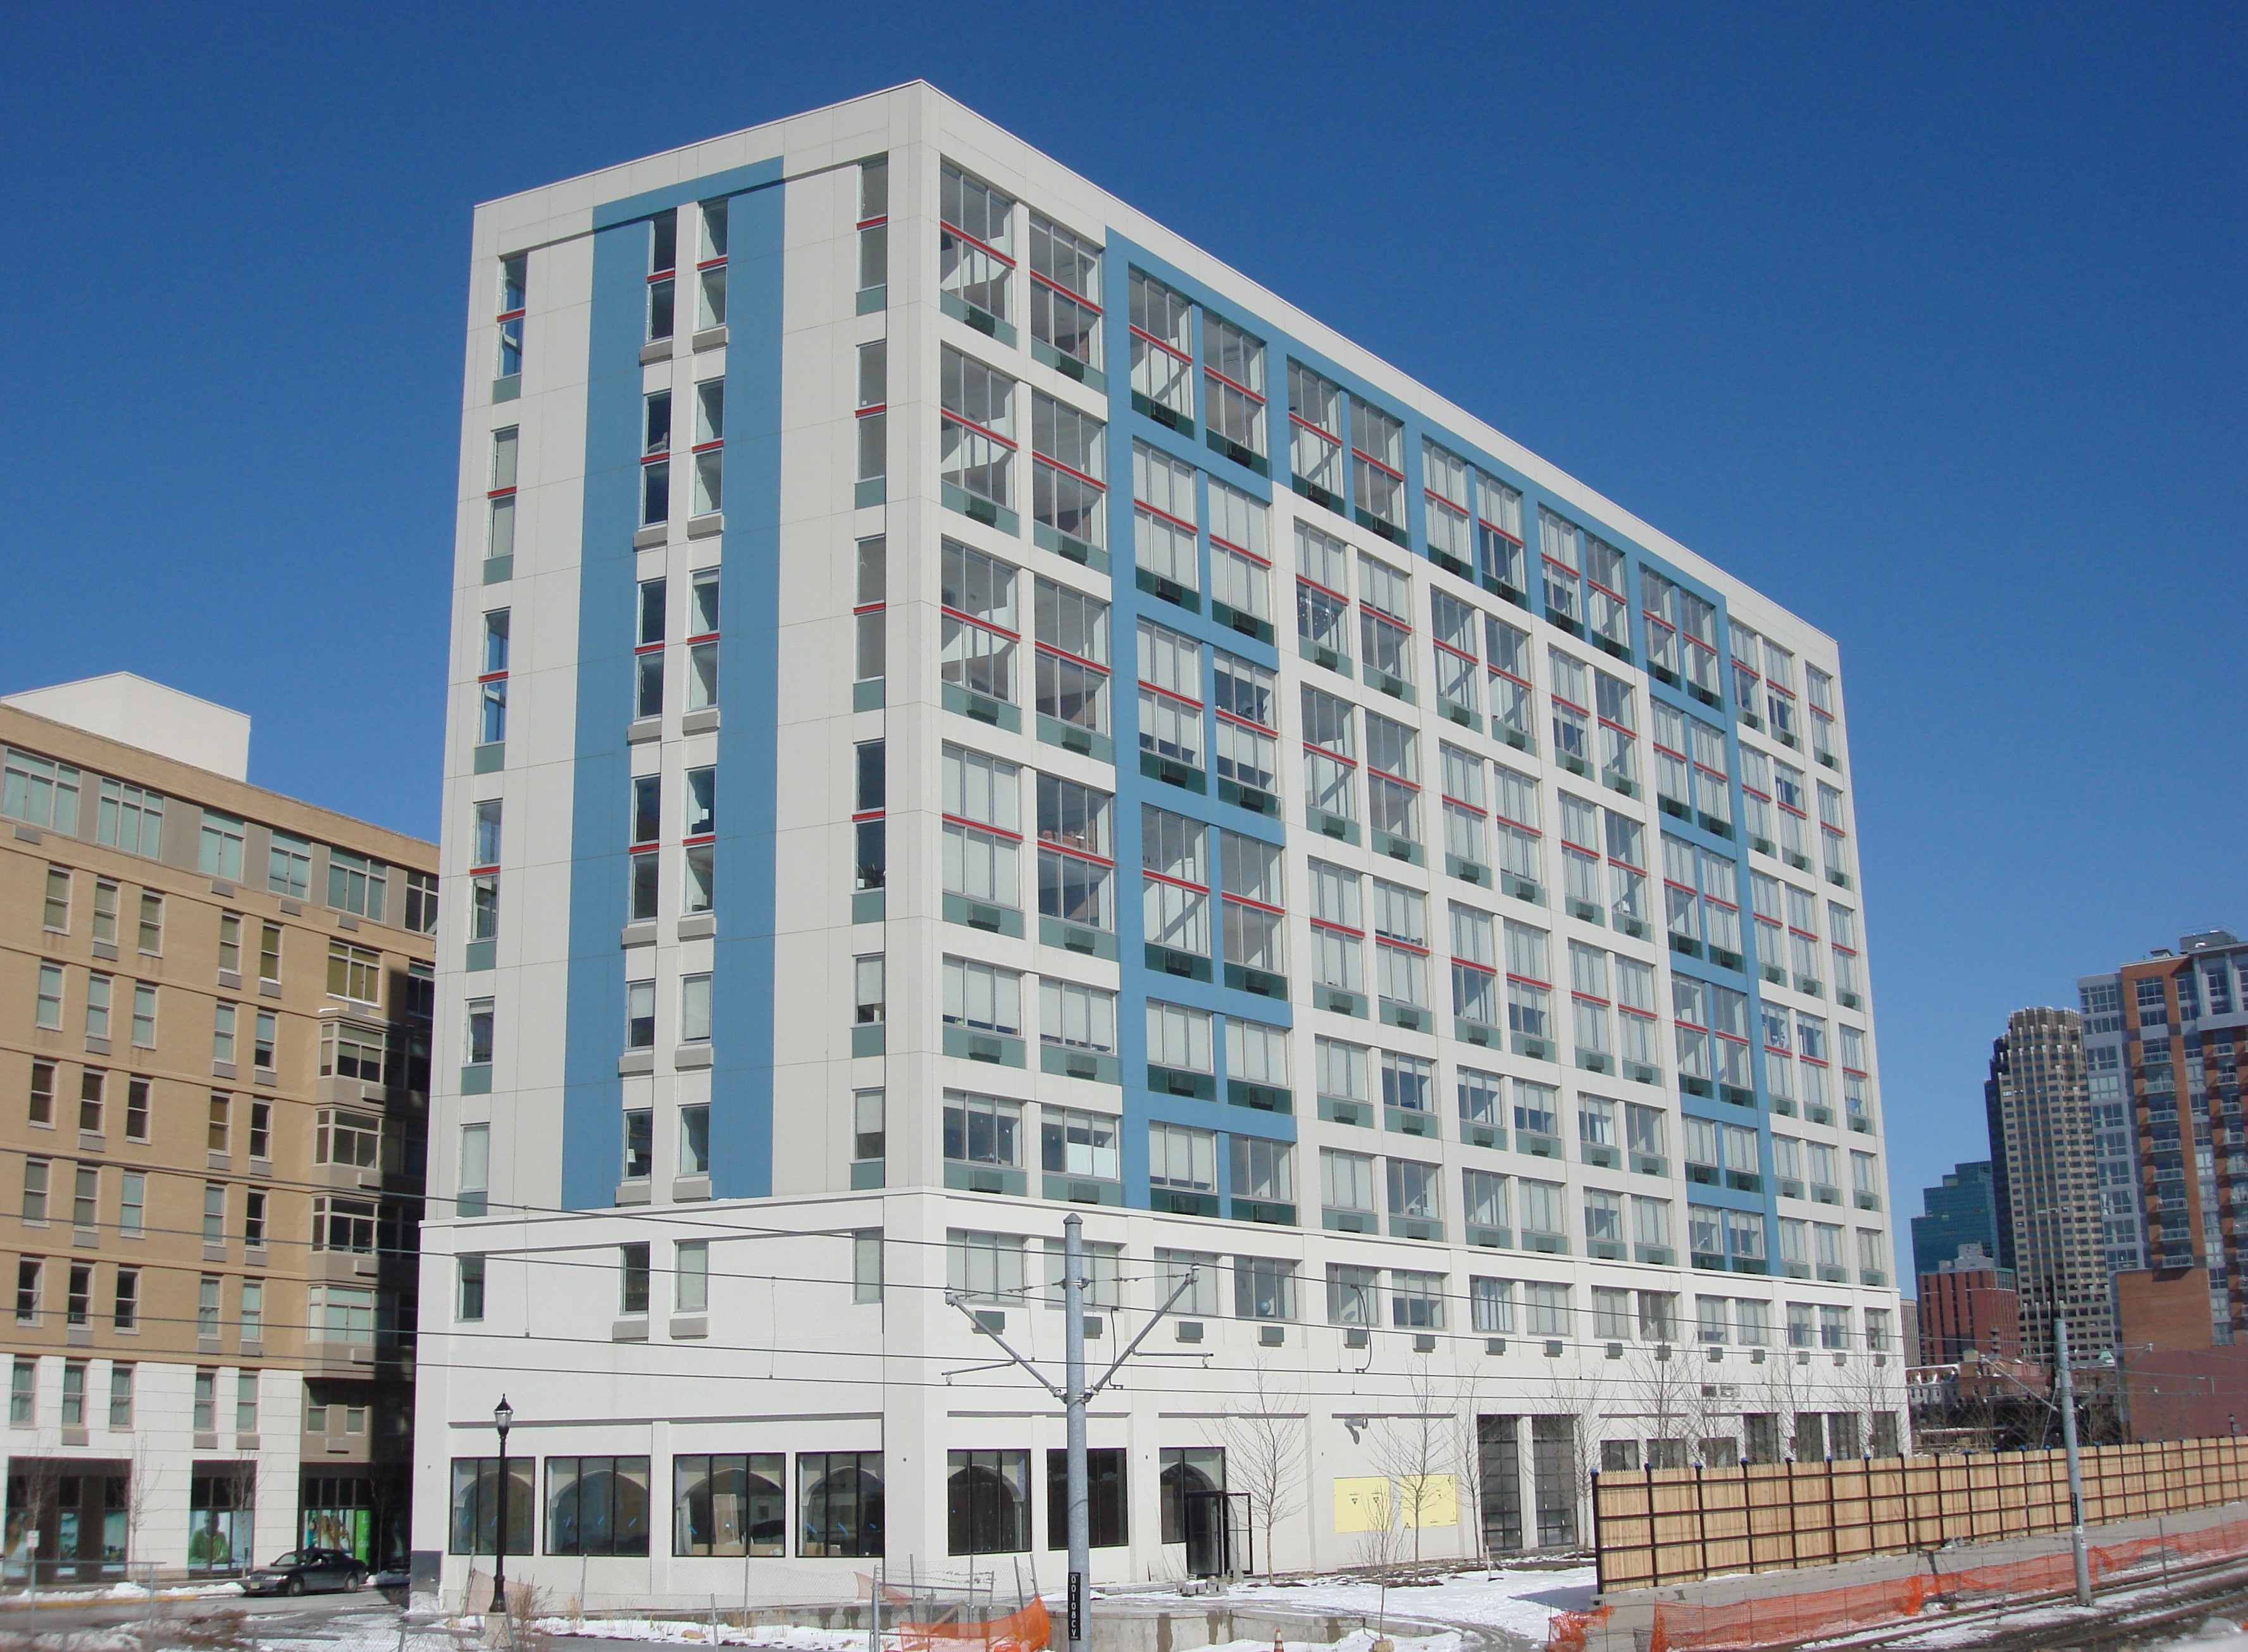 regent street 809 jersey city nj 07302 1 bedroom apartment for rent